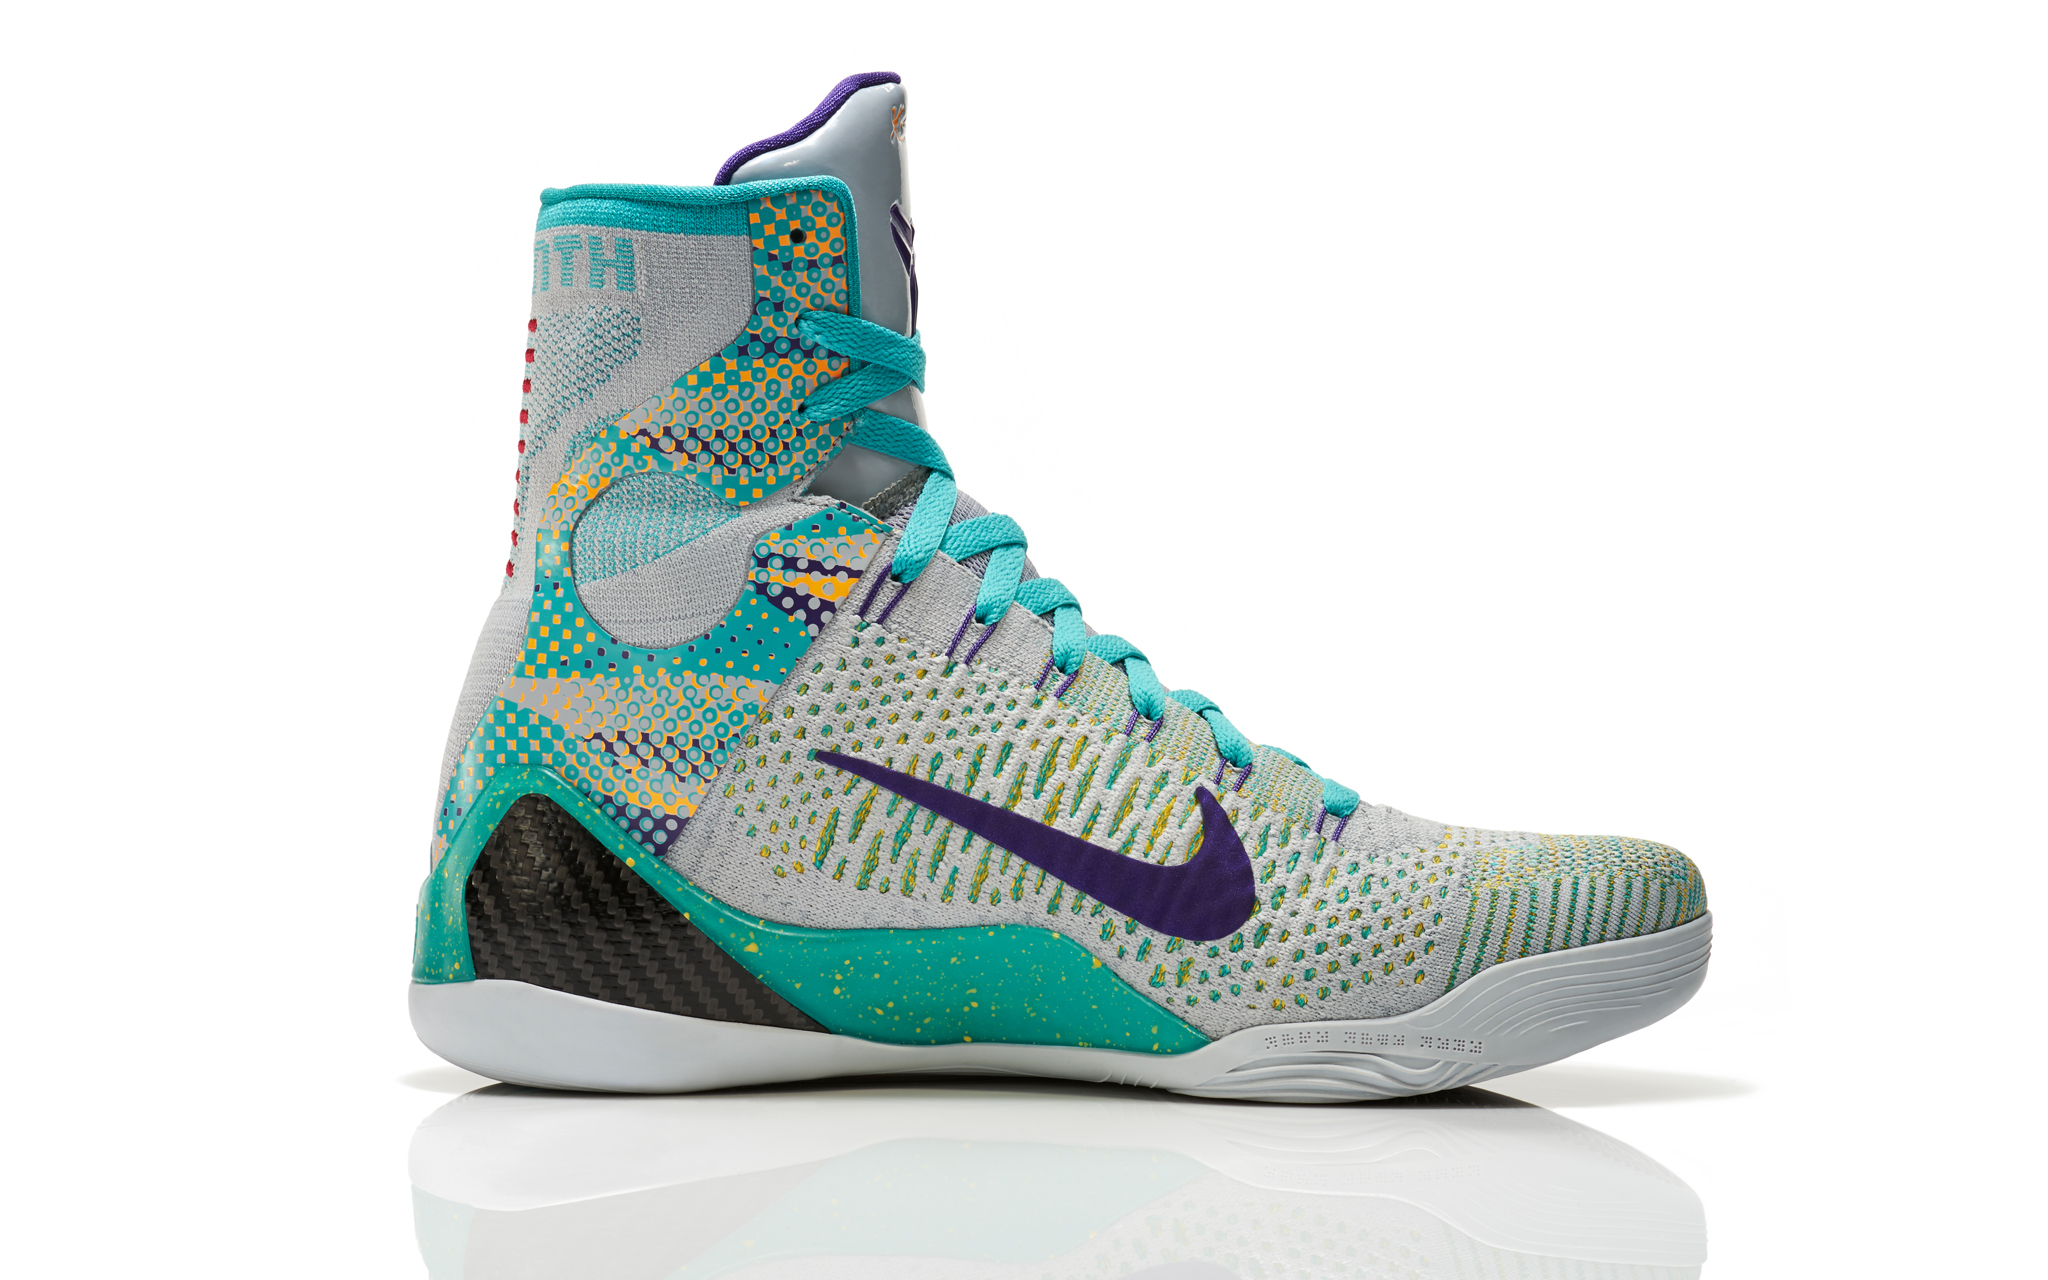 68d8d5 Cheap Kobe 9 High Tops Cheap Discount Kobe 9 Shoes